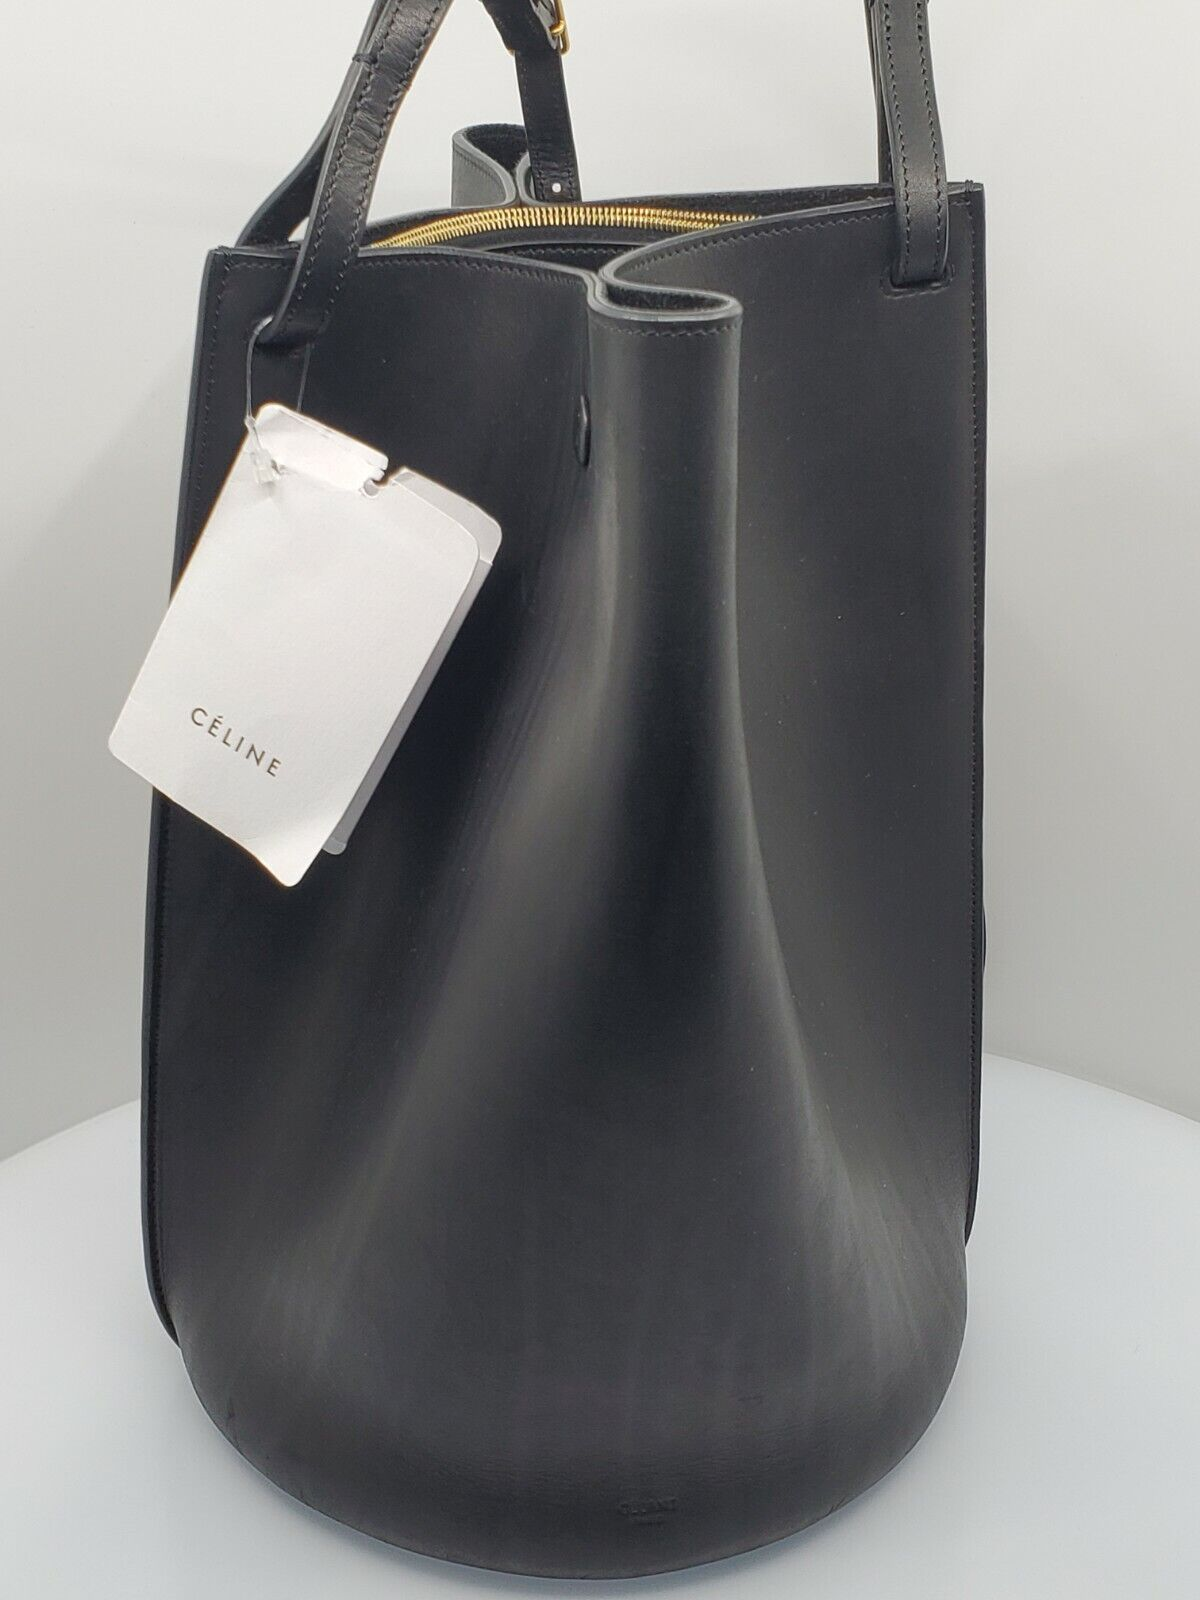 CELINE Smooth Black Leather Medium Pinched Snap Button Bucket Bag New wTags